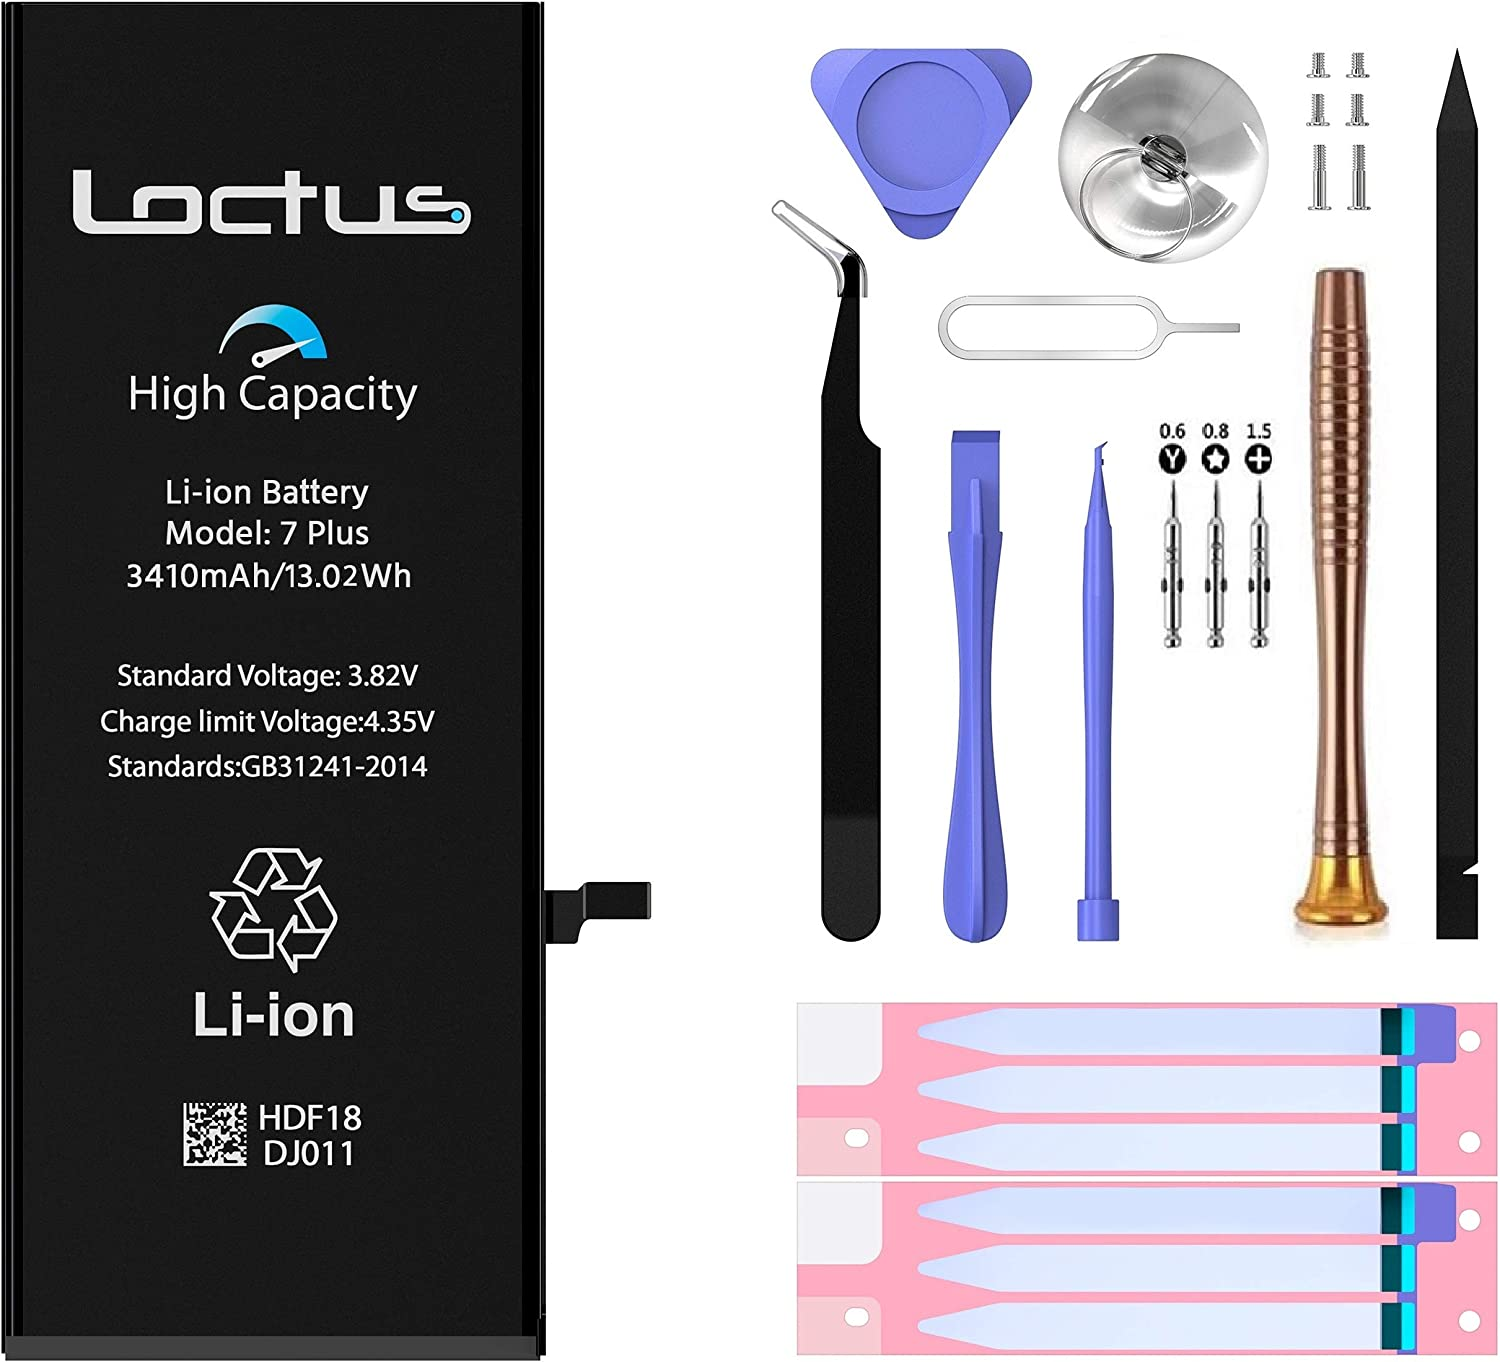 iPhone 7 Plus Battery Replacement Kit 3410 mAh High Capacity Li-ion Battery with Professional Toolkit, Adhesive Tape and Instructions Included by Loctus - 24 Months Warranty (Apple iPhone 7 Plus)